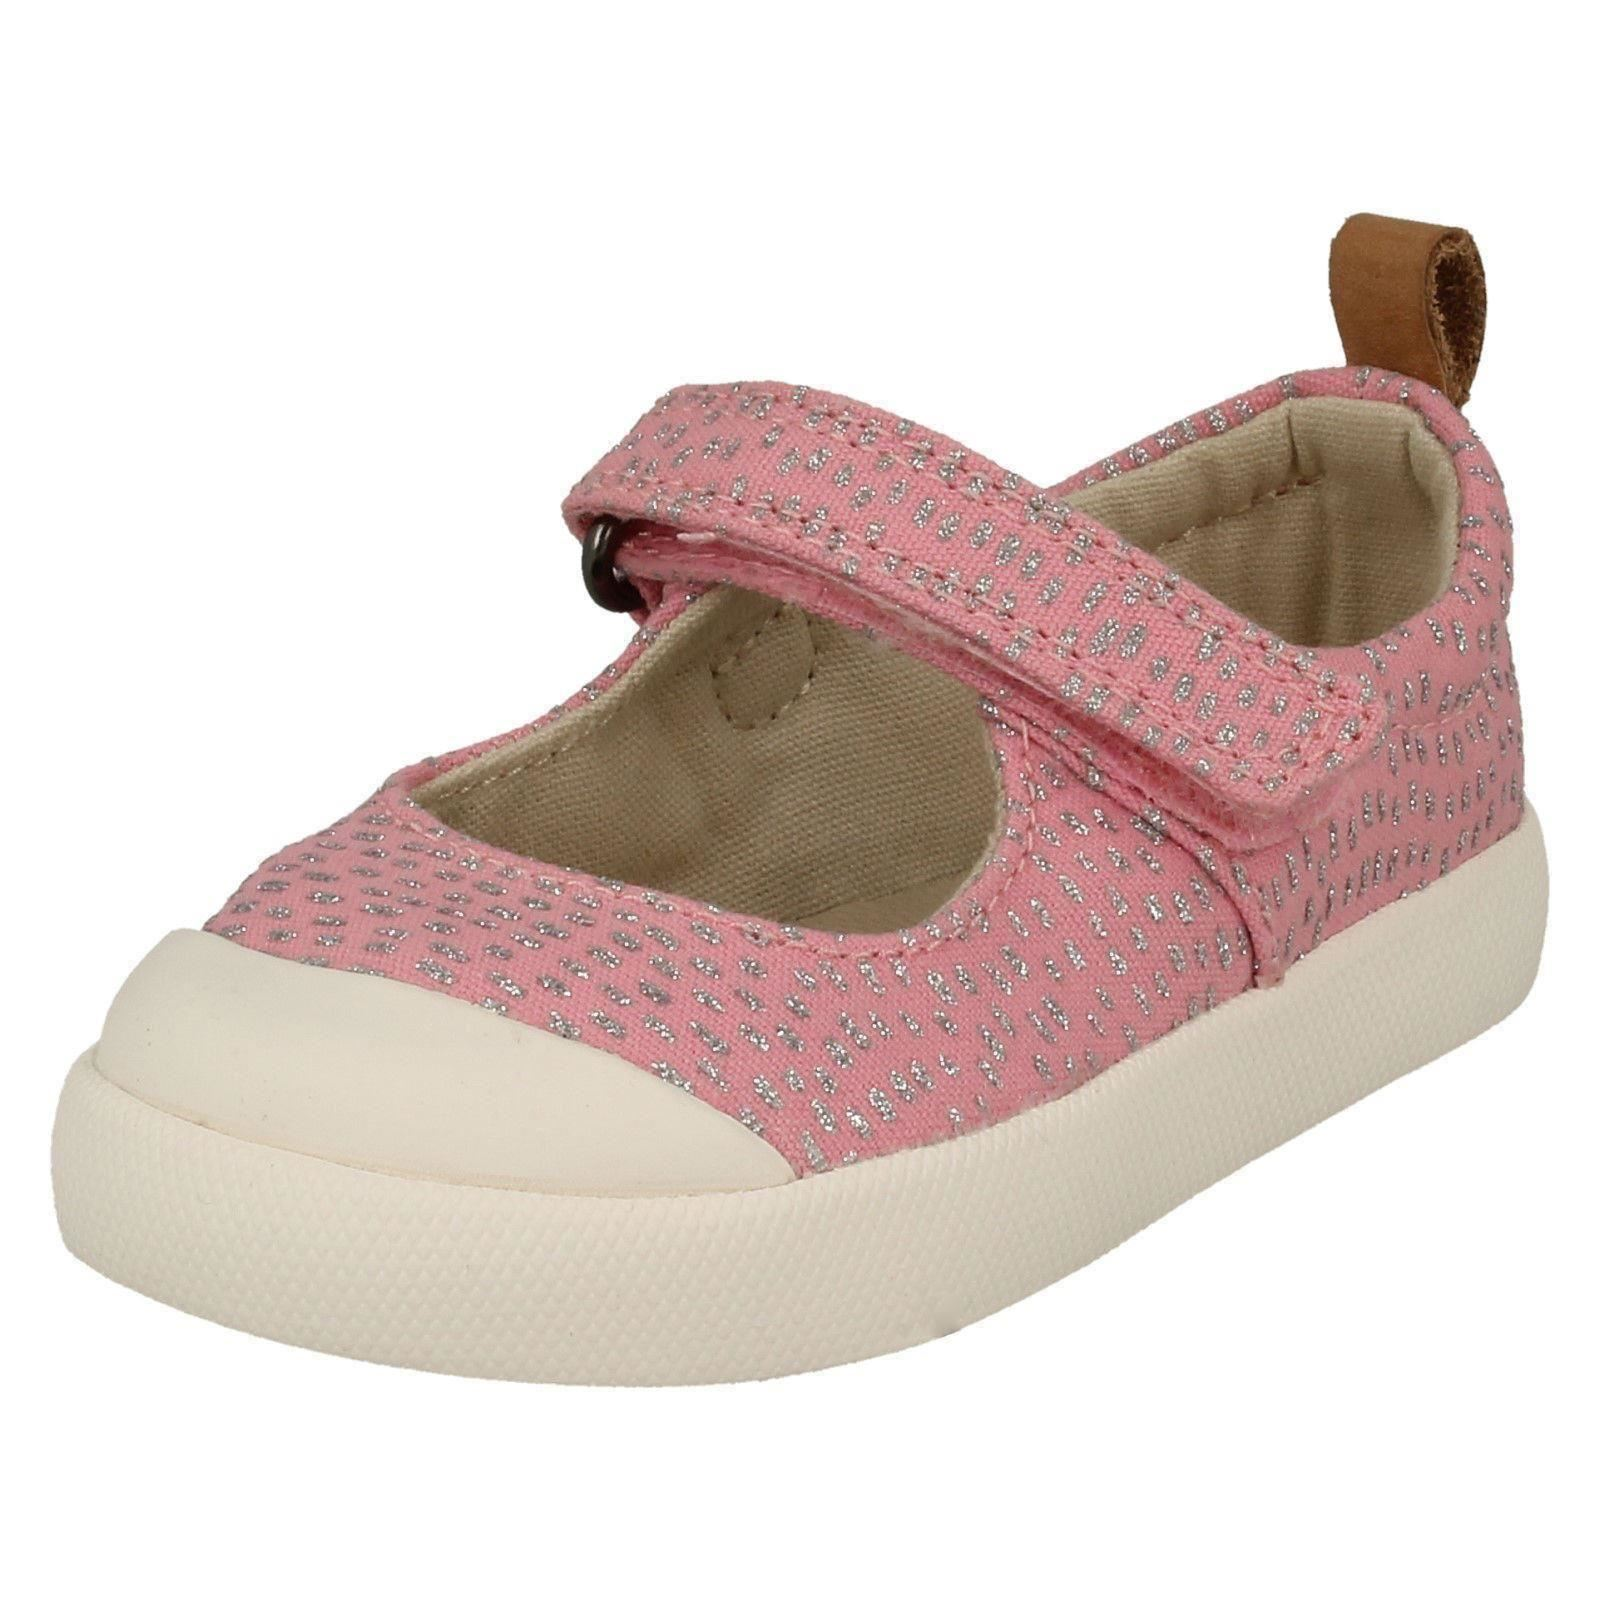 Infant Baby Girls Clarks Casual Mary Jane Glitter Canvas Shoes Halcy